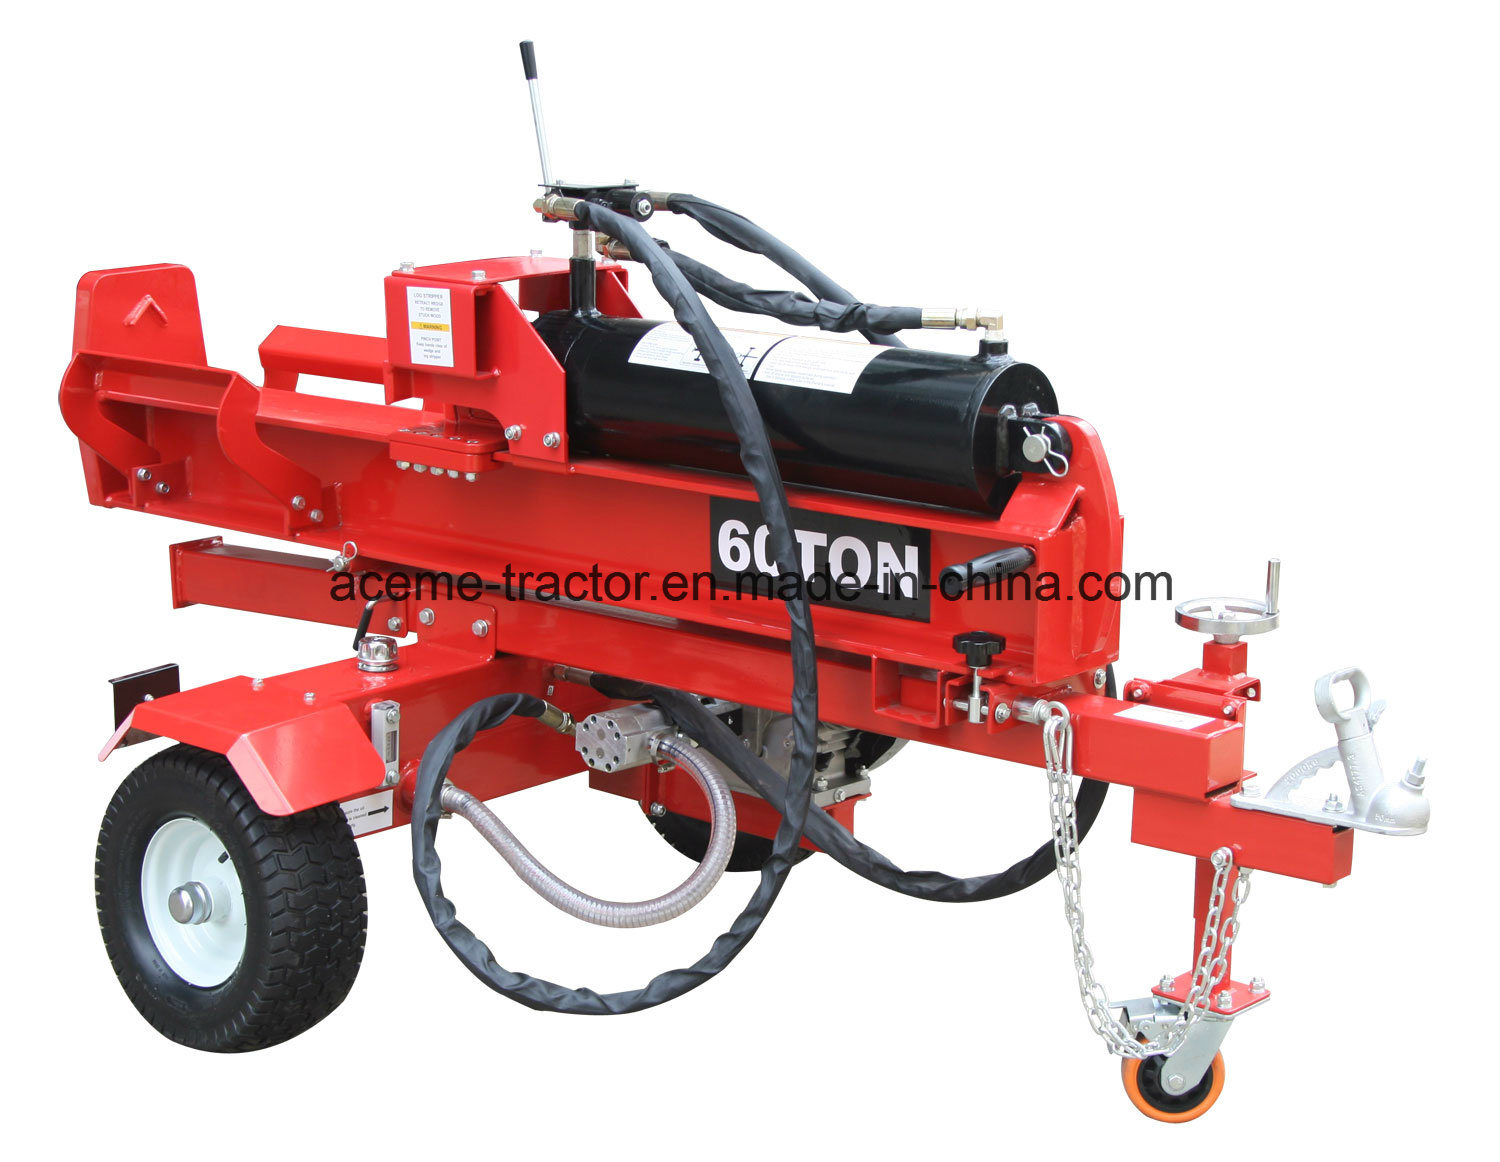 60t 15HP Lifan Gasoline Engine EU Log Splitter Ce EPA